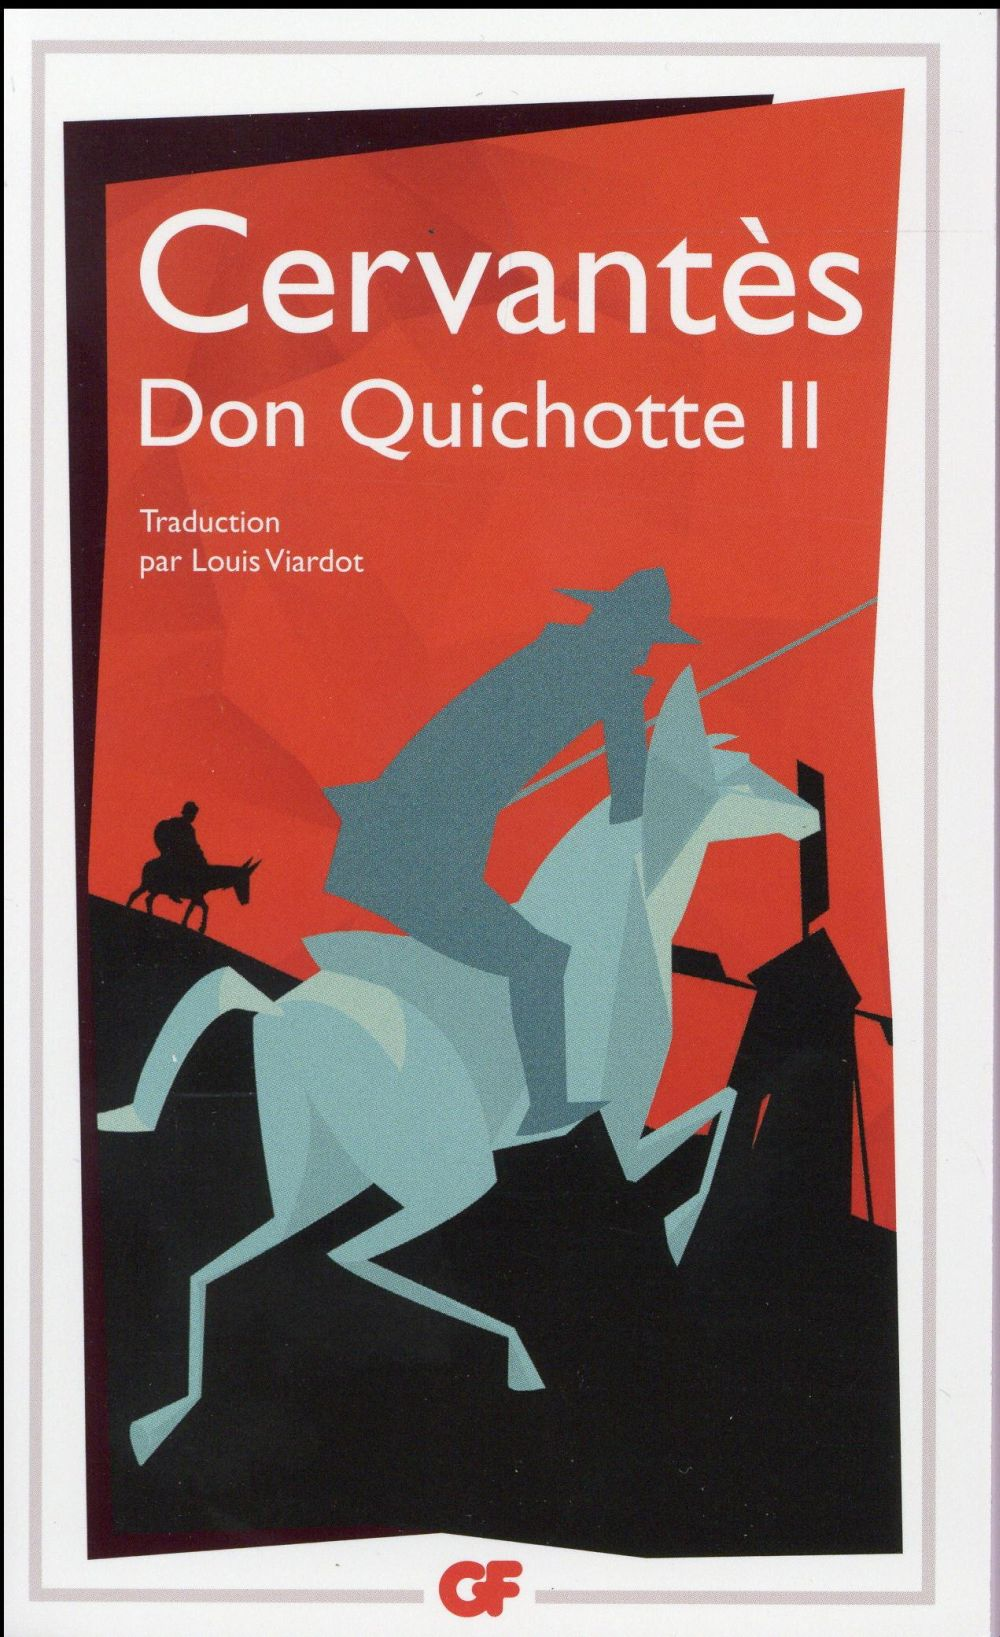 LITTERATURE ET CIVILISATION - T02 - DON QUICHOTTE